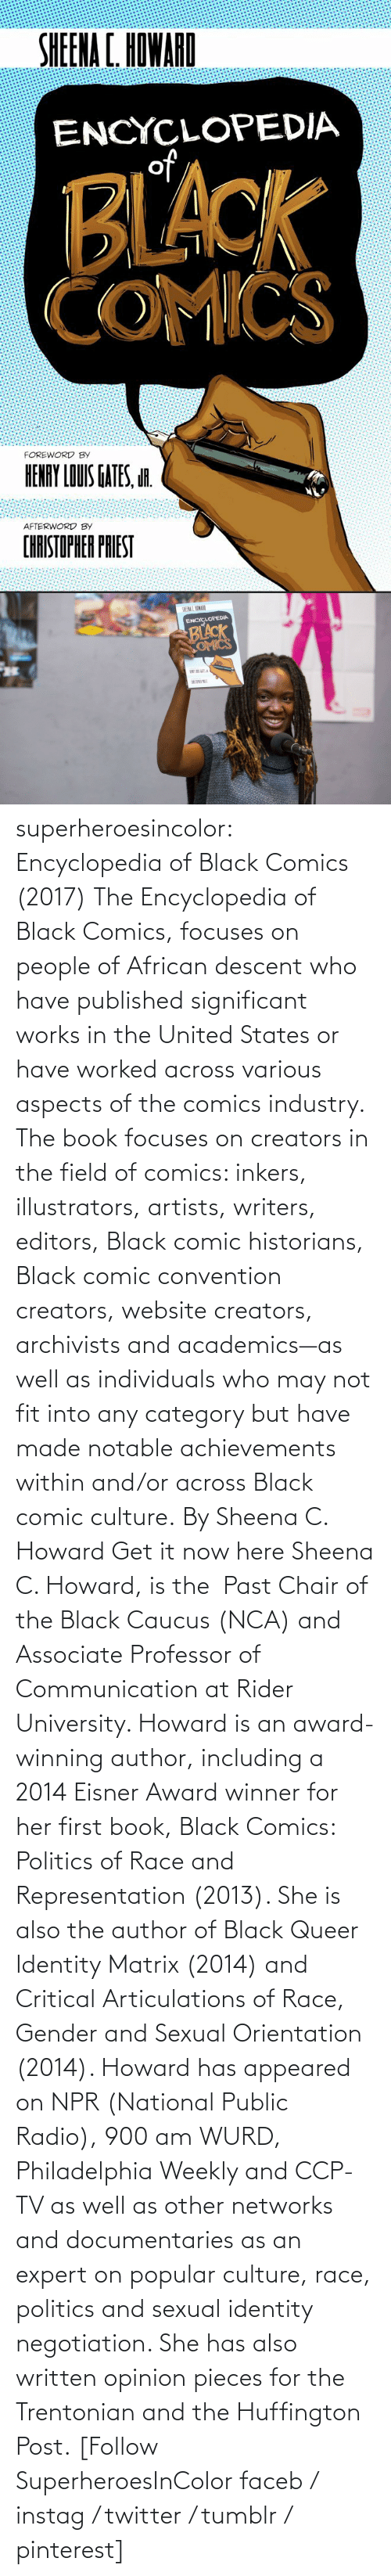 as well: superheroesincolor: Encyclopedia of Black Comics (2017) The Encyclopedia of Black Comics, focuses on people of African descent who have published significant works in the United States or have worked across various aspects of the comics industry.  The book focuses on creators in the field of comics: inkers, illustrators, artists, writers, editors, Black comic historians, Black comic convention creators, website creators, archivists and academics—as well as individuals who may not fit into any category but have made notable achievements within and/or across Black comic culture. By Sheena C. Howard Get it now here  Sheena C. Howard, is the  Past Chair of the Black Caucus (NCA) and Associate Professor of Communication at Rider University. Howard is an award-winning author, including a 2014 Eisner Award winner for her first book, Black Comics: Politics of Race and Representation (2013). She is also the author of Black Queer Identity Matrix (2014) and Critical Articulations of Race, Gender and Sexual Orientation (2014). Howard has appeared on NPR (National Public Radio), 900 am WURD, Philadelphia Weekly and CCP-TV as well as other networks and documentaries as an expert on popular culture, race, politics and sexual identity negotiation. She has also written opinion pieces for the Trentonian and the Huffington Post.   [Follow SuperheroesInColor faceb / instag / twitter / tumblr / pinterest]